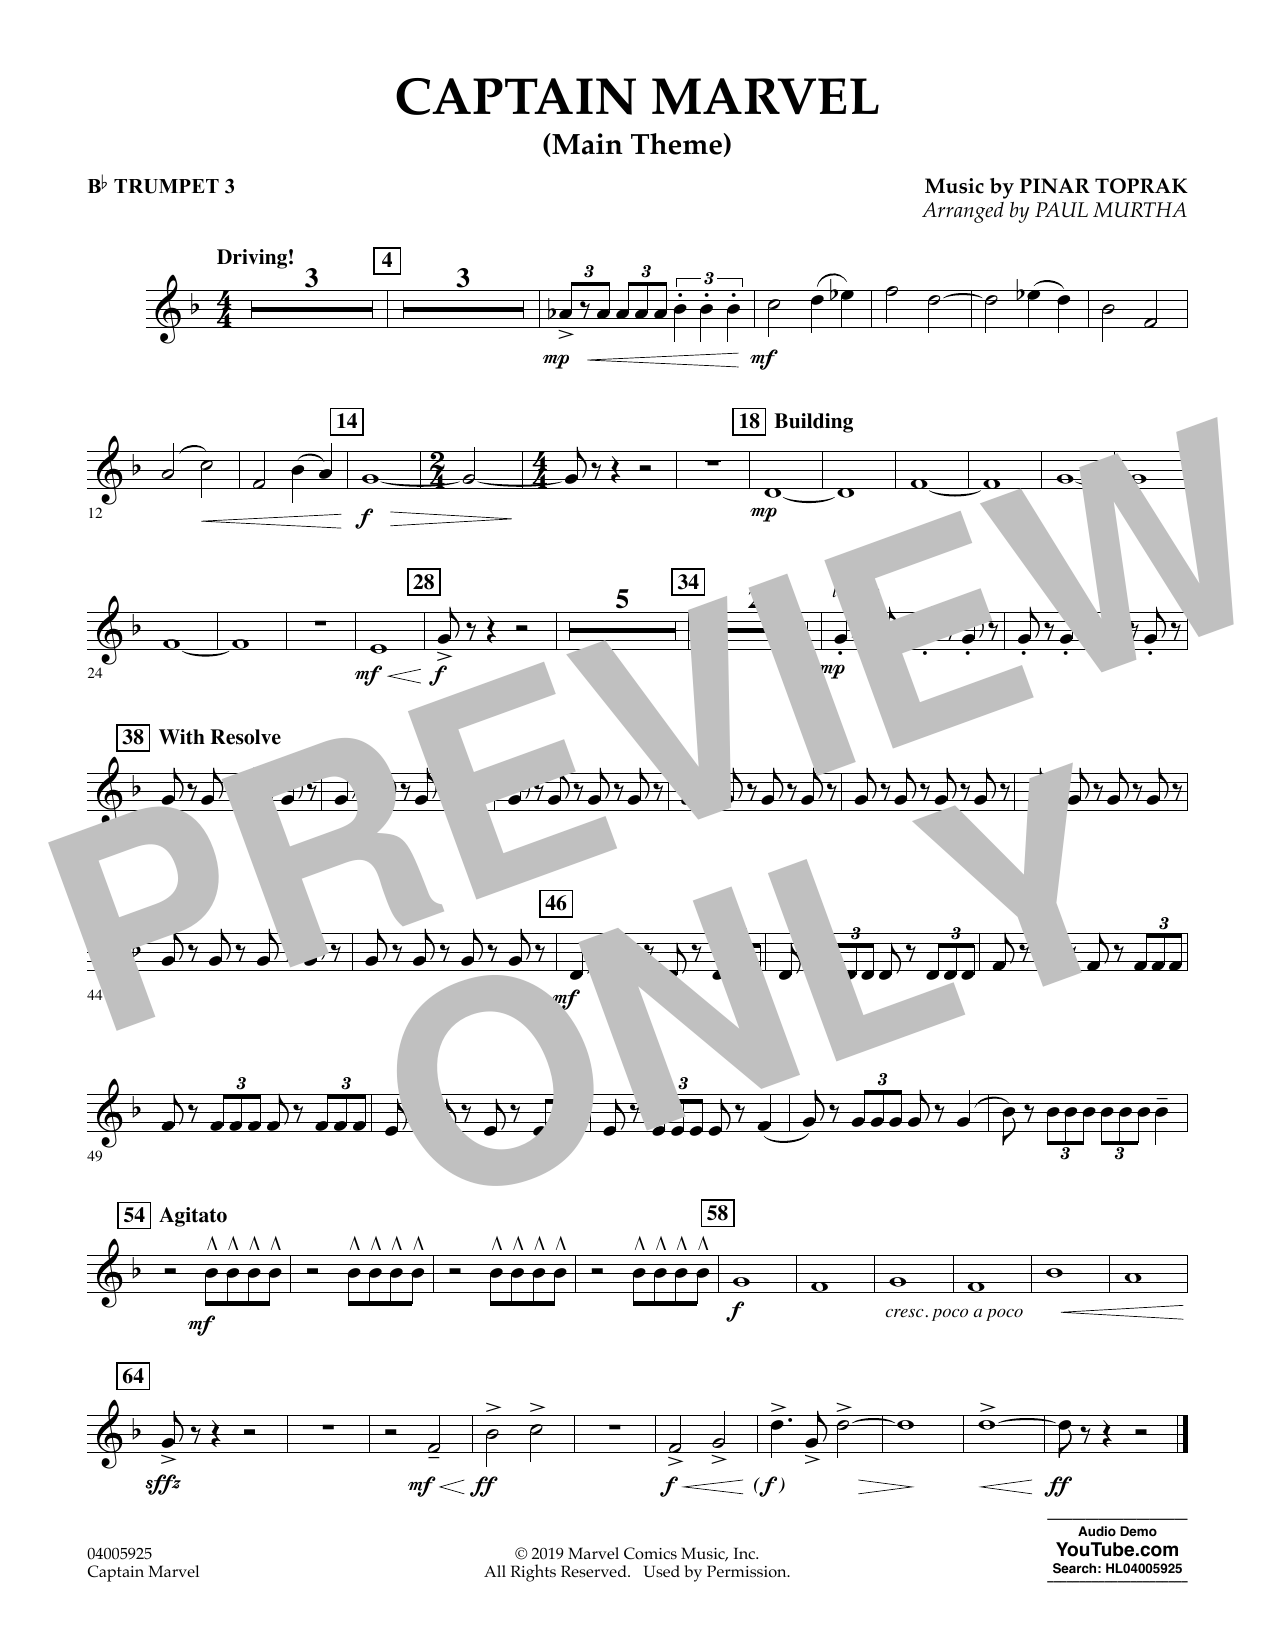 Pinar Toprak Captain Marvel (Main Theme) (arr. Paul Murtha) - Bb Trumpet 3 sheet music preview music notes and score for Concert Band including 1 page(s)